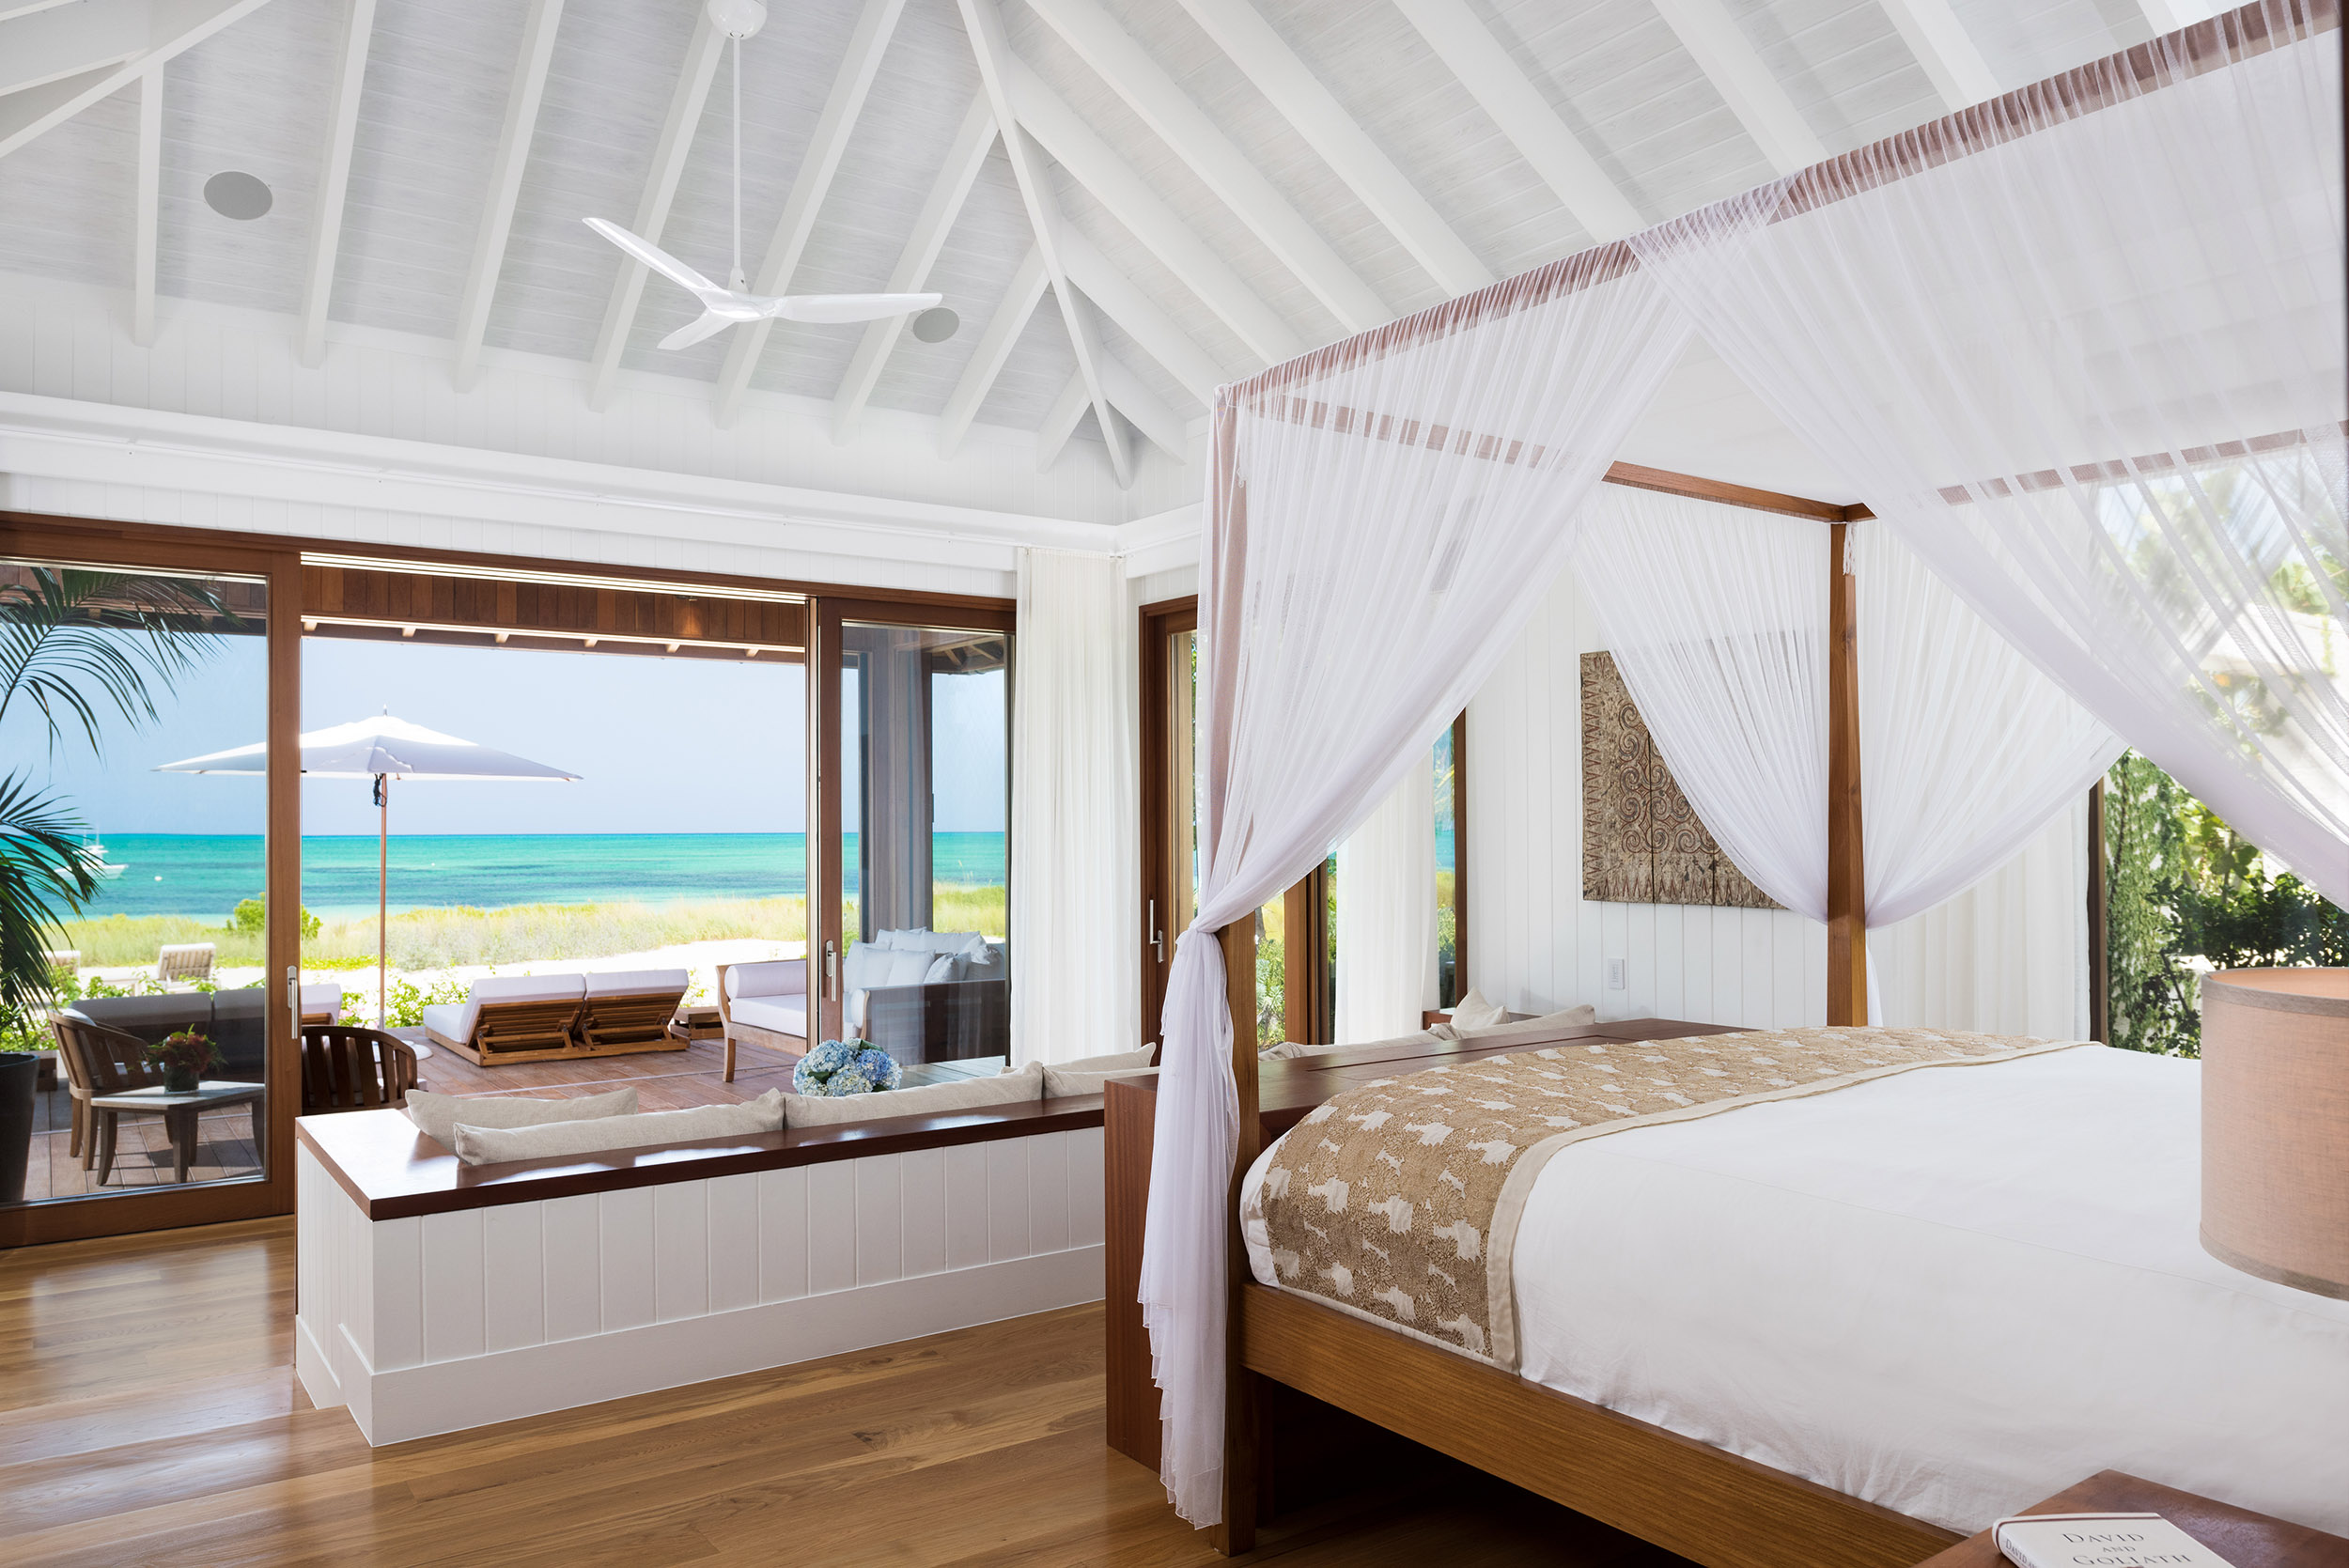 Serenity - view of the master bedroom and deck beyond